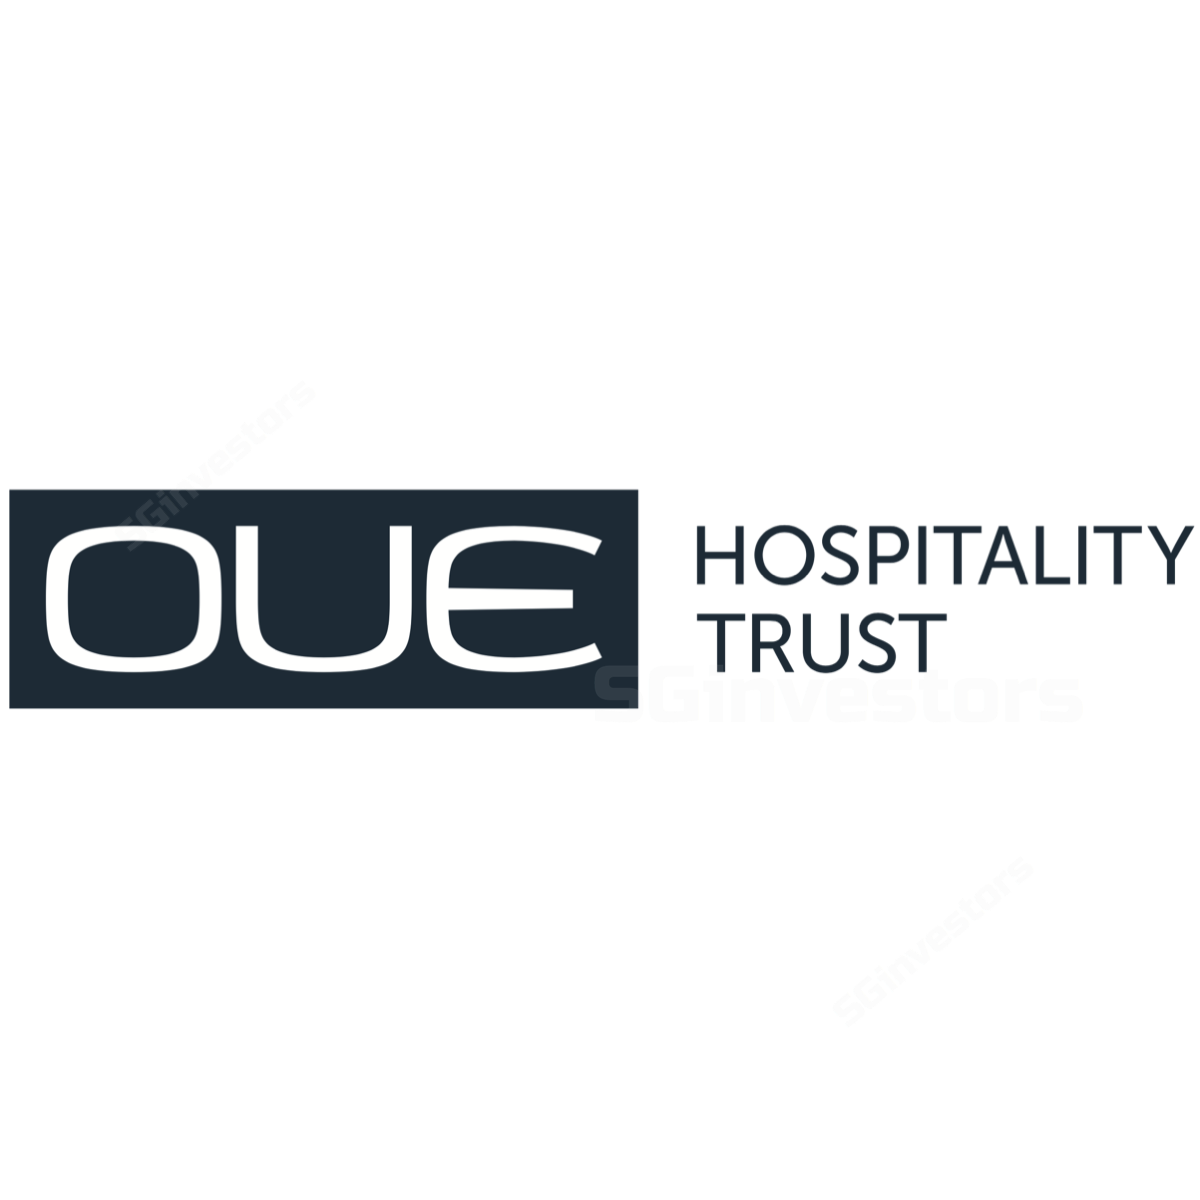 OUE Hospitality Trust - CIMB Research 2017-01-25: 4Q16 in the right direction